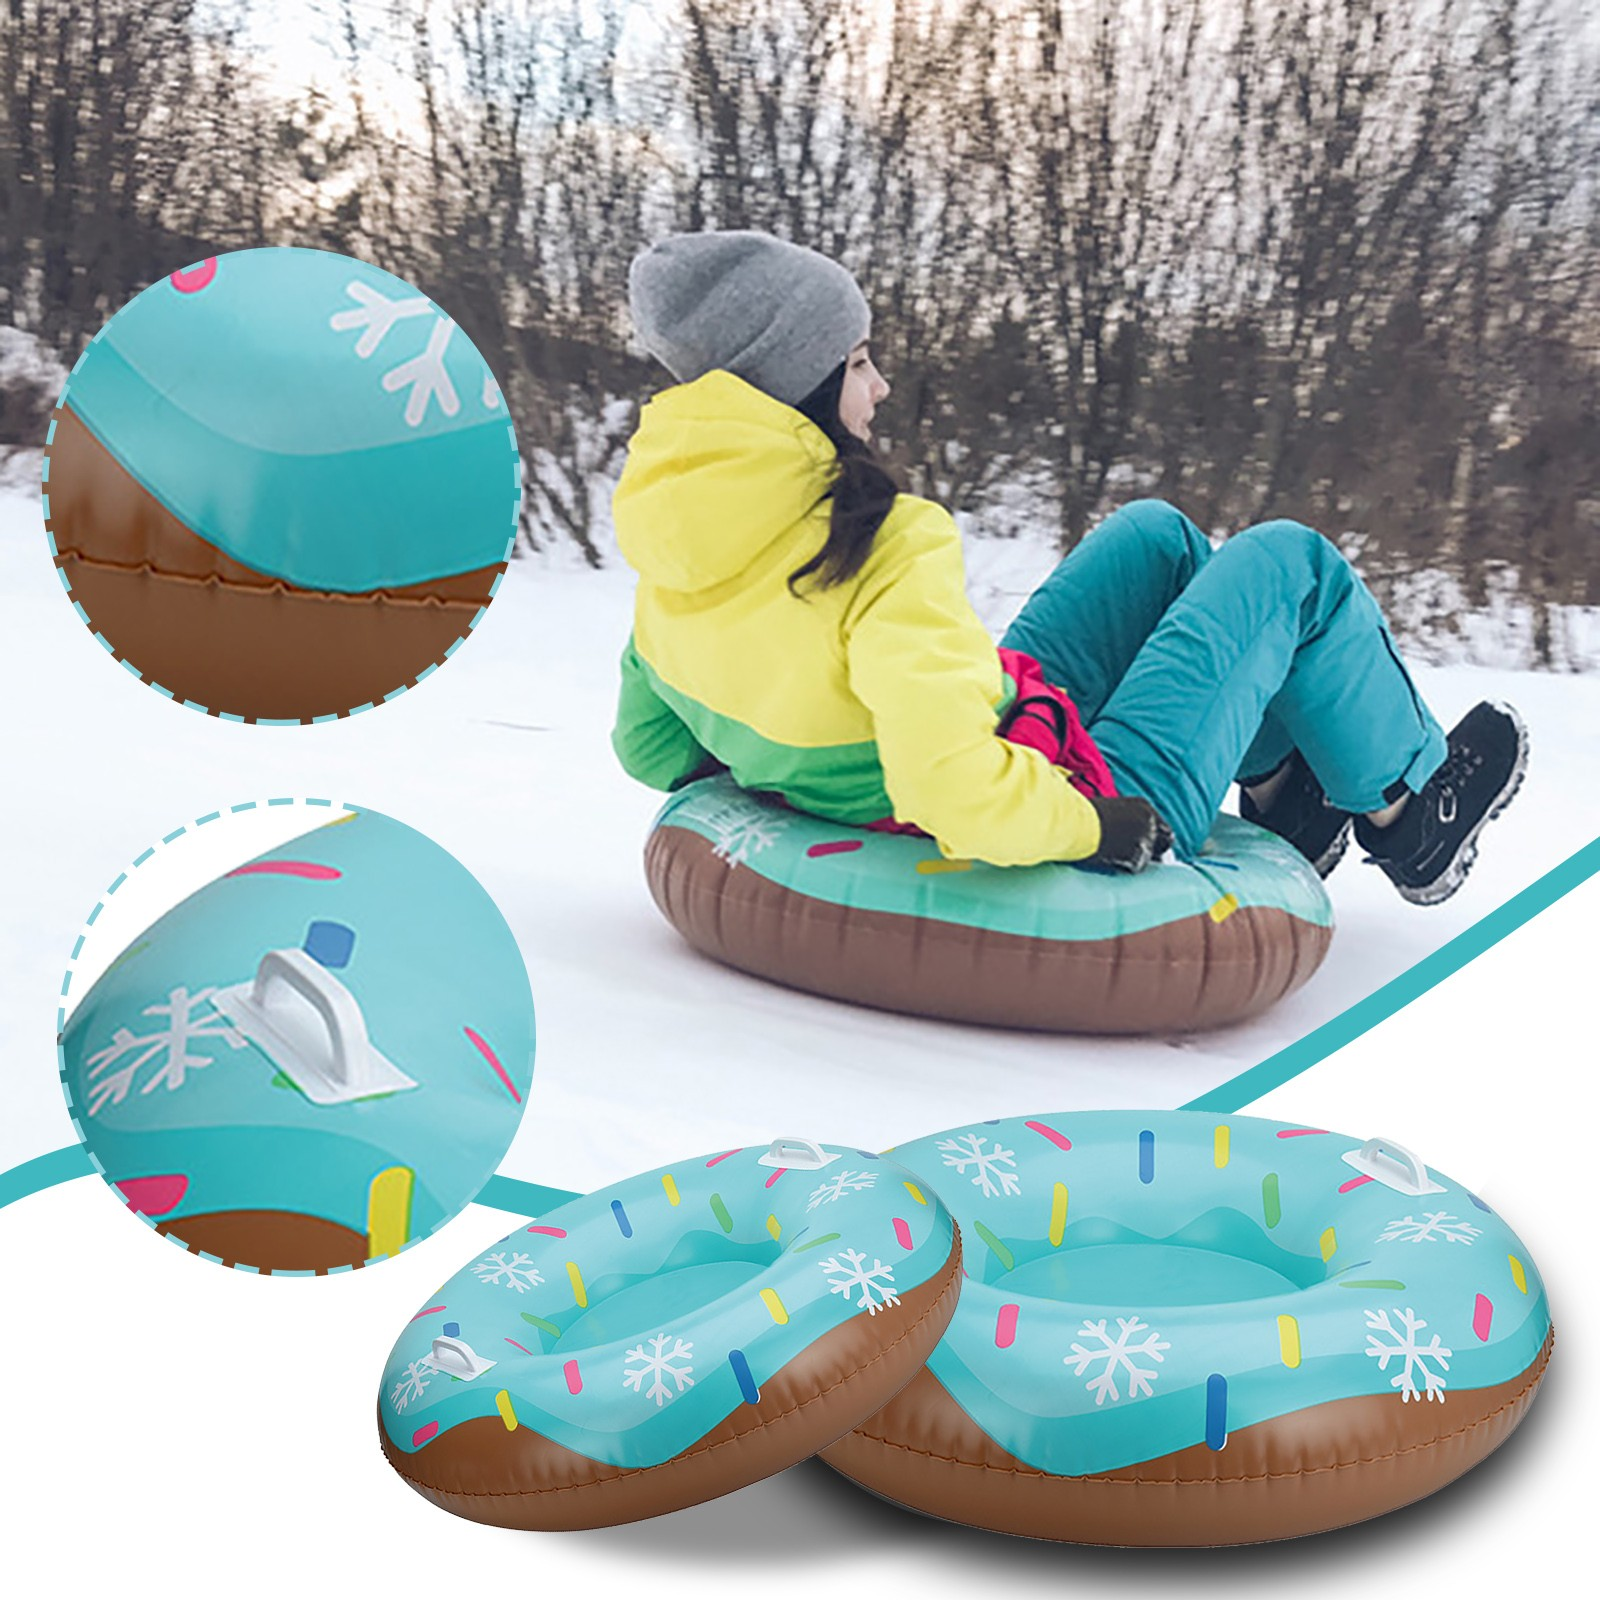 Snow Tube For Winter Inflatable Floated Skiing Ring With Handle Pvc Tube Kid Ski Pad Outdoor Sports Accessories 2021 Hot#40